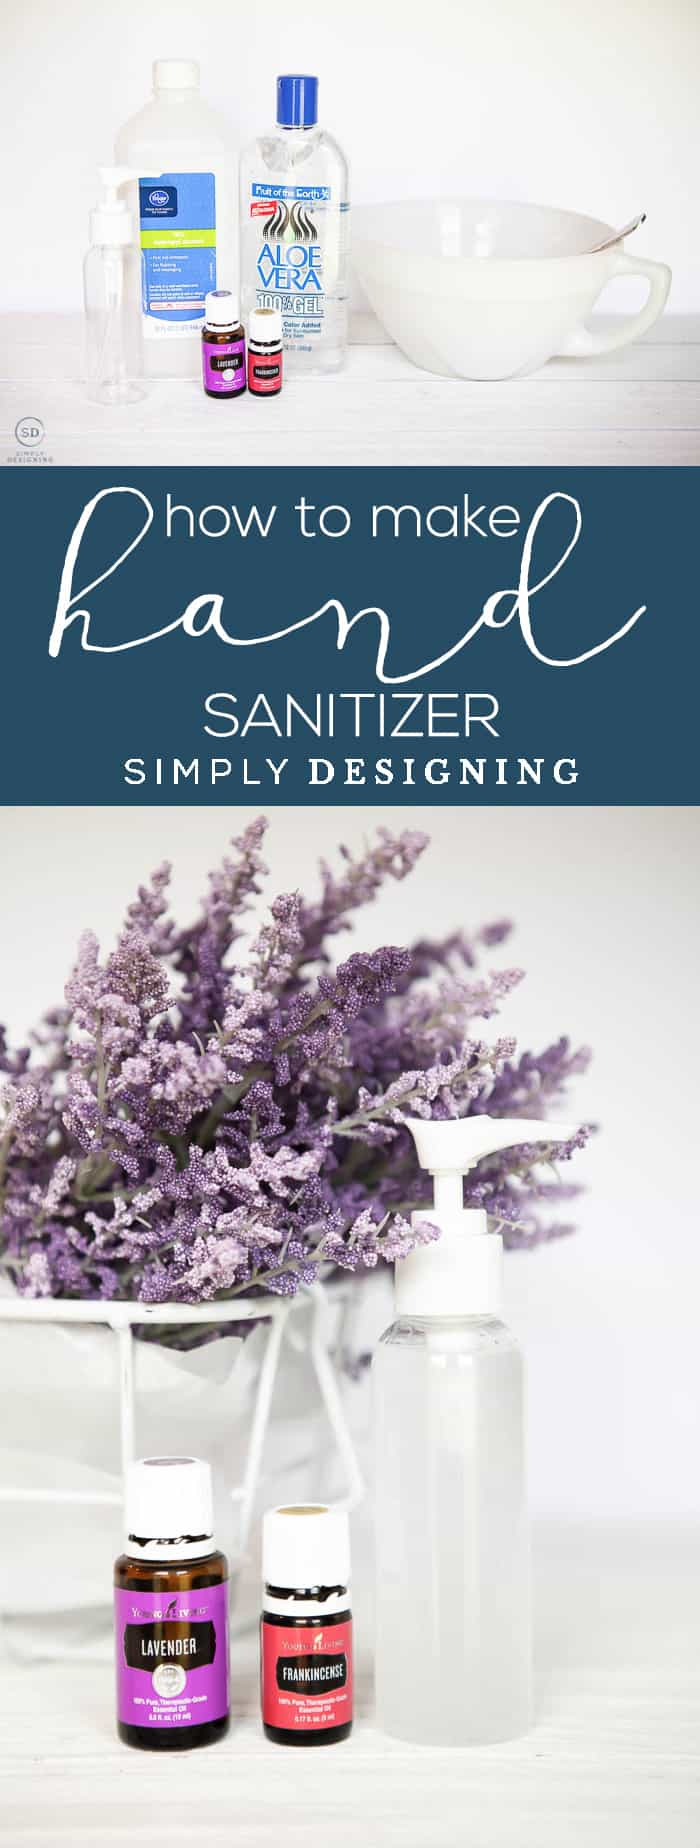 How to make Hand Sanitizer - an easy safer and less expensive natural alternative